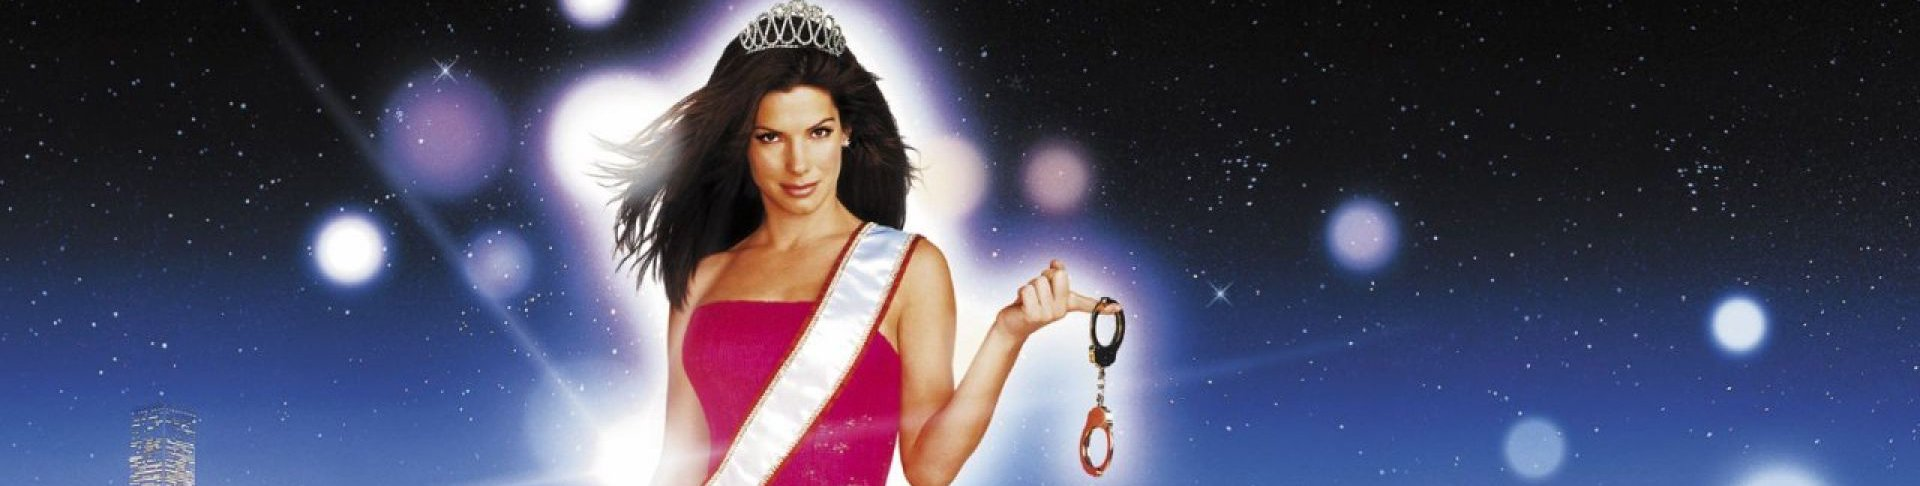 miss congeniality full movie free no download